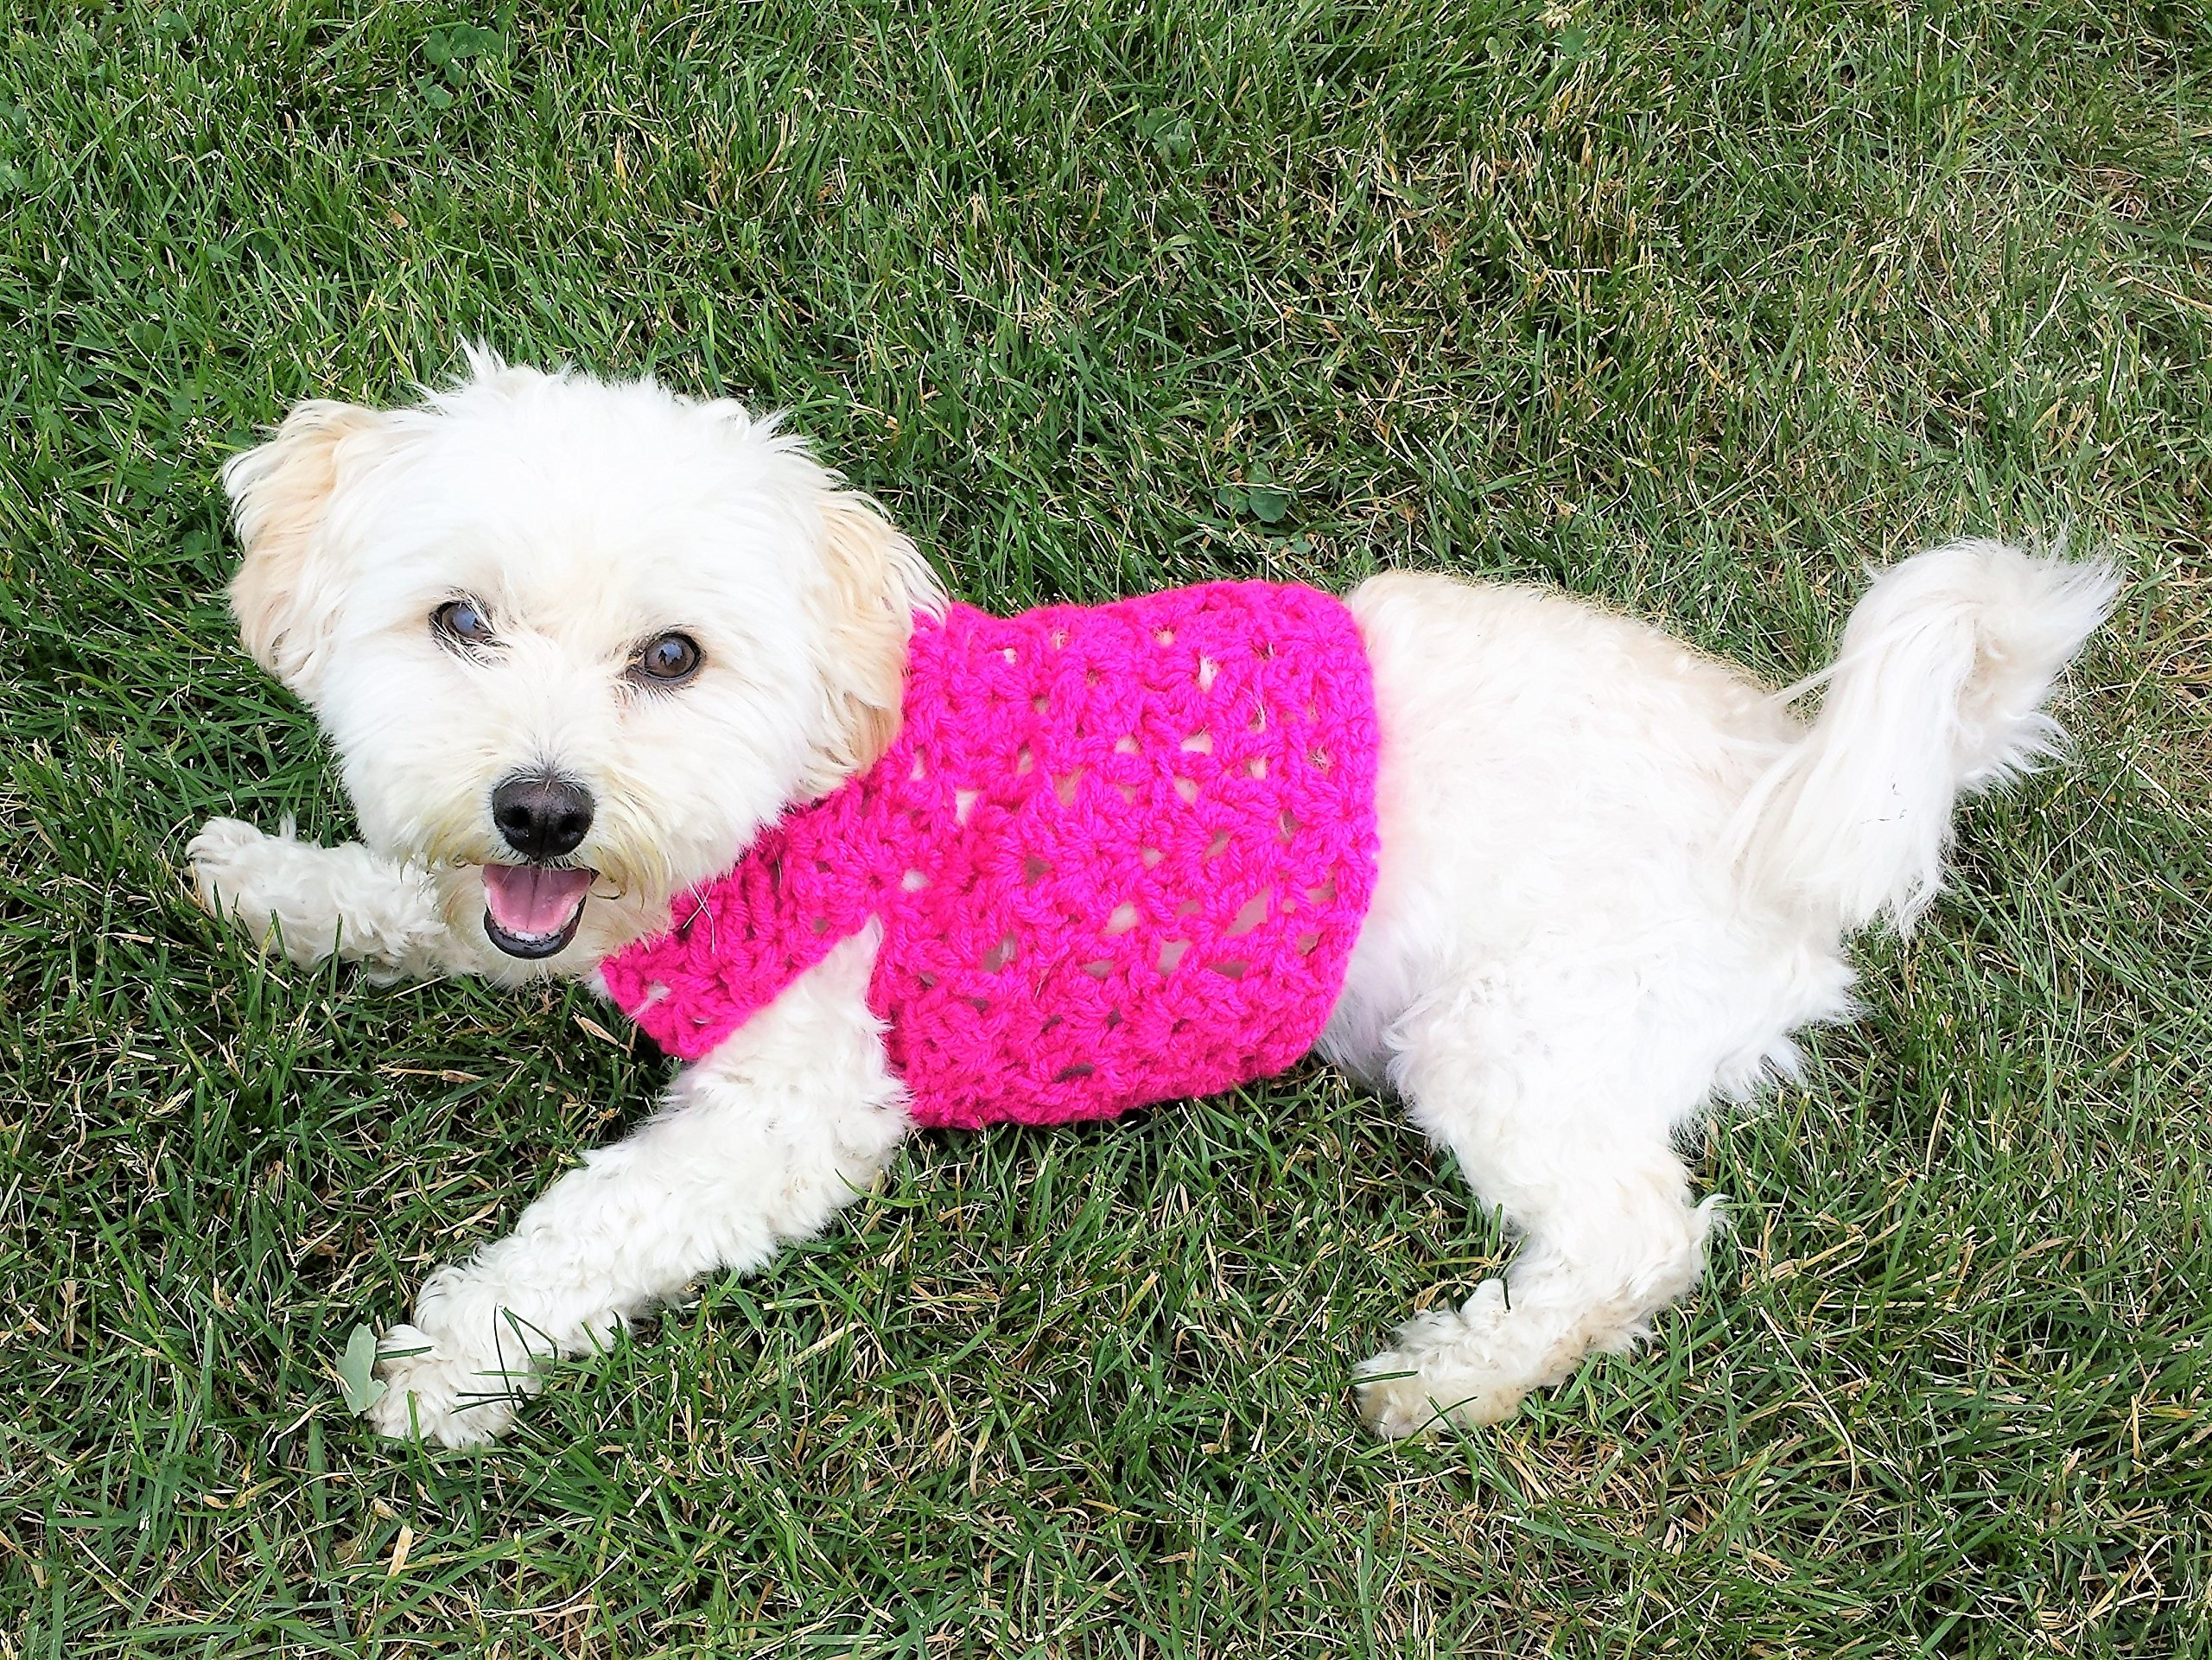 Hot Pink Dog Sweater, available in sizes XXS -L